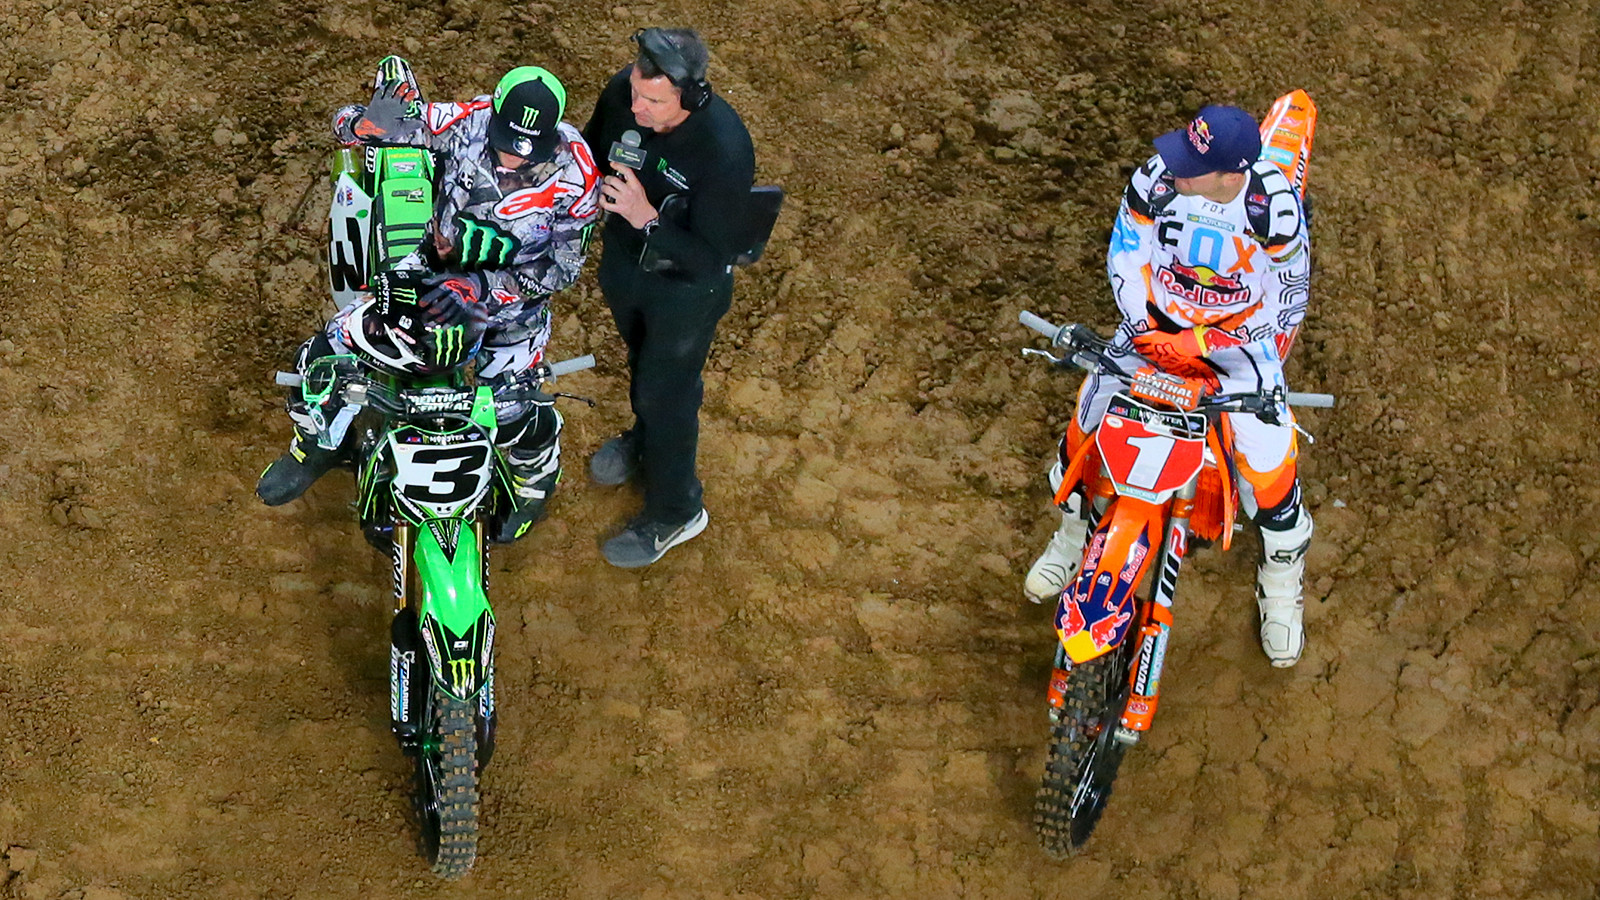 Eli Tomac and Ryan Dungey, are now down to what's basically a three-race shootout for the 2017 Monster Energy Supercross title.